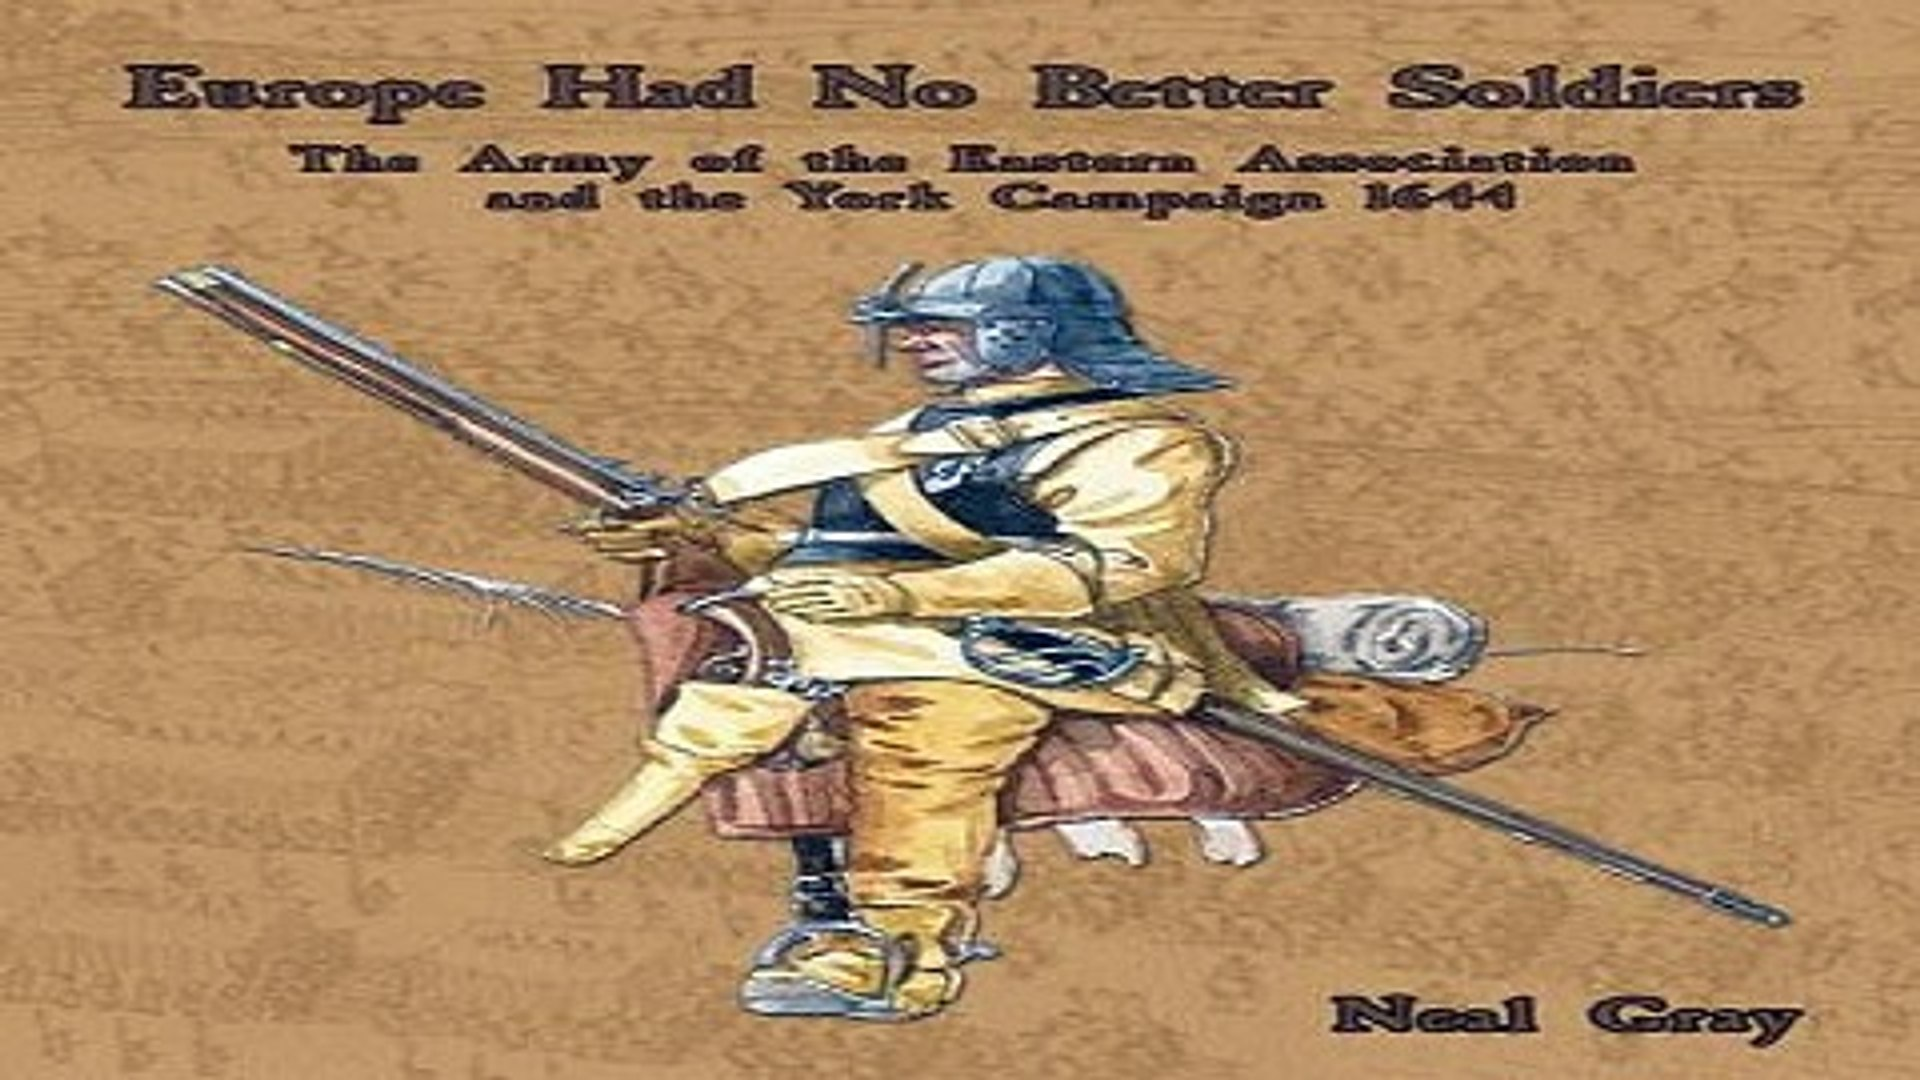 Download Europe Had No Better Soldiers  The Army of the Eastern Association and the York Campaign